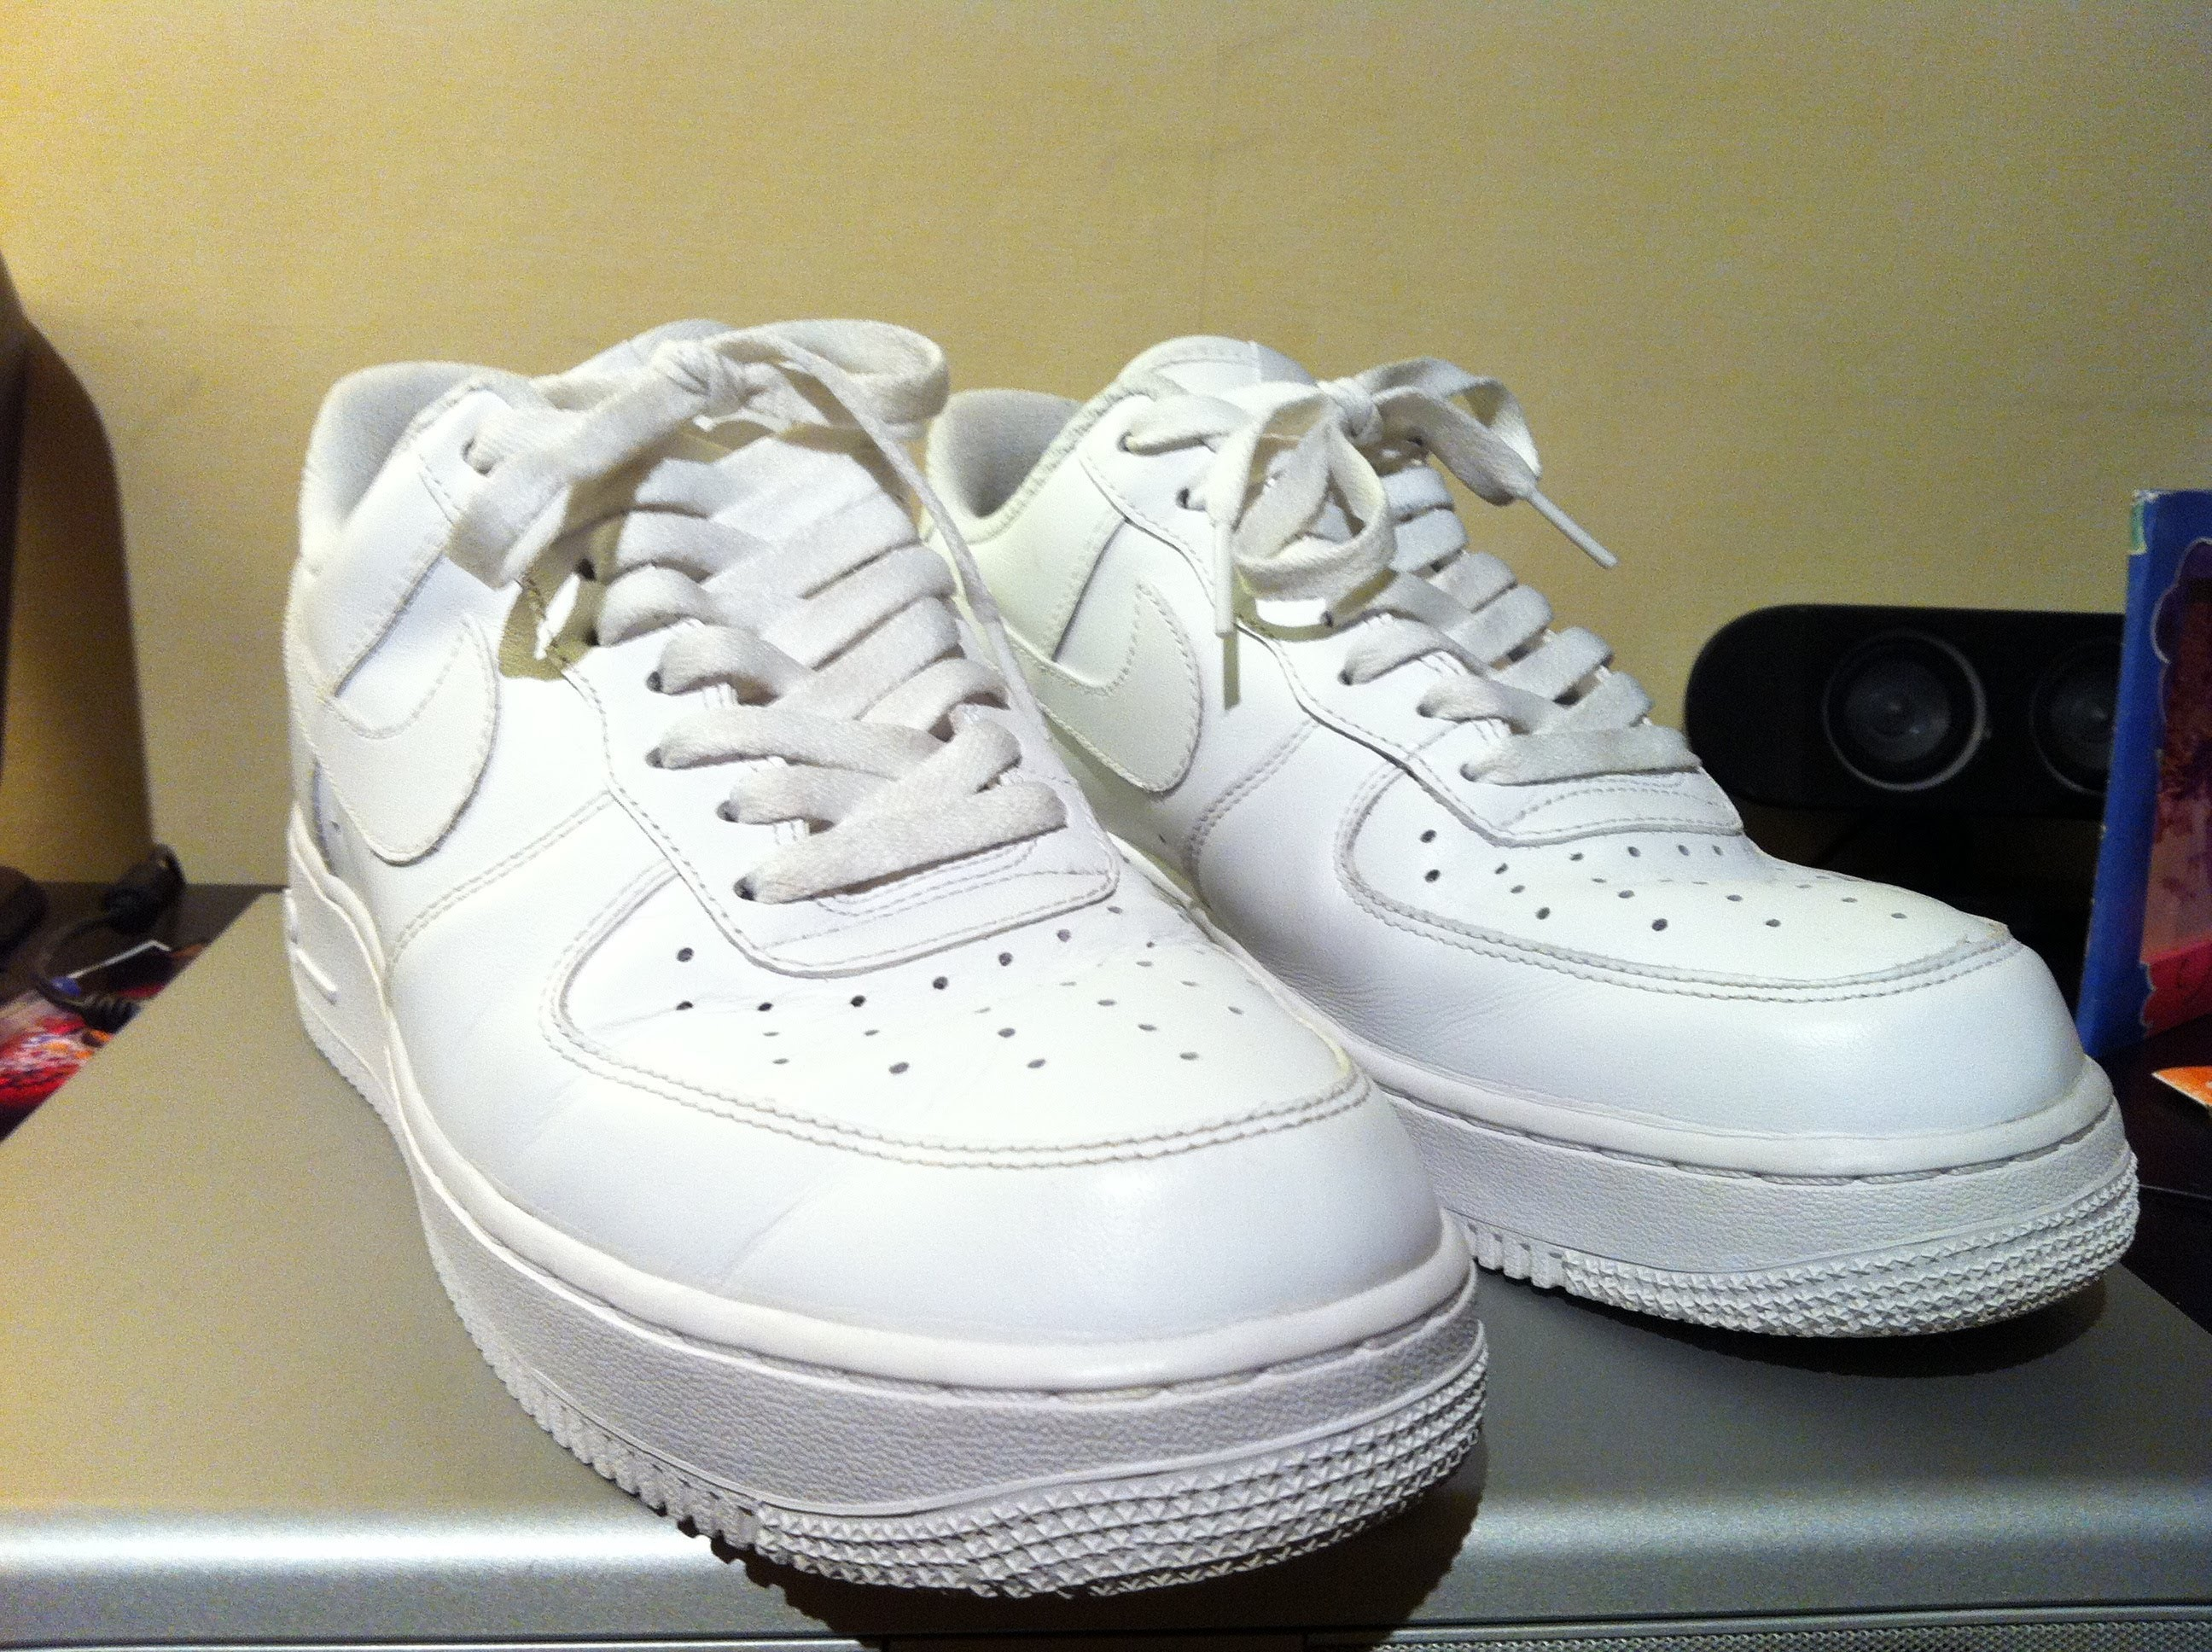 Nike Air One Force Lacet Force One Air Force Nike Lacet Lacet Air Nike TOXwilkPZu